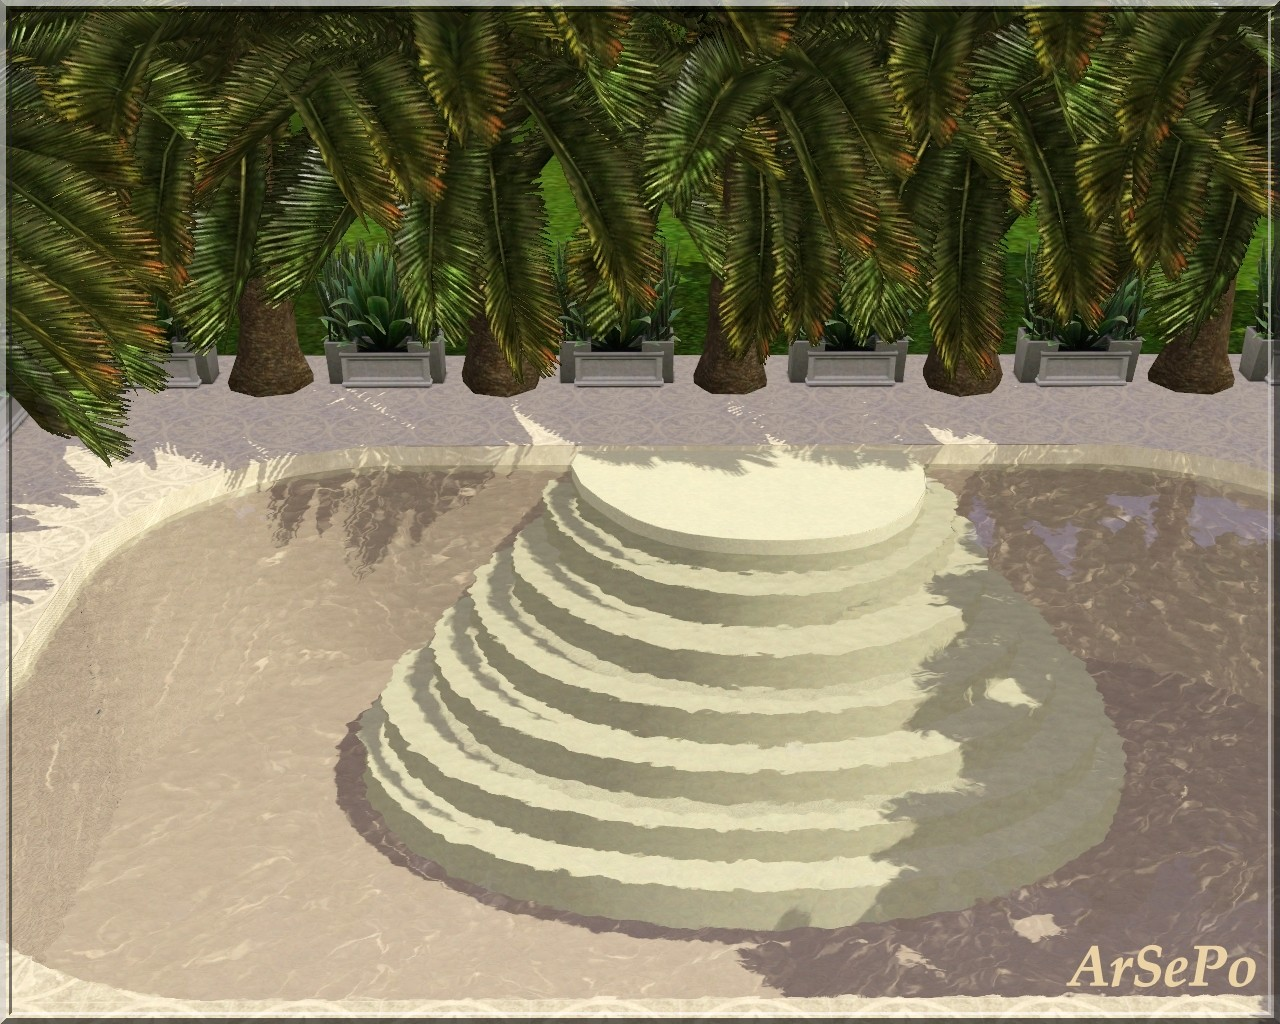 Empire Sims 3 Pool Stairs by ArSePo